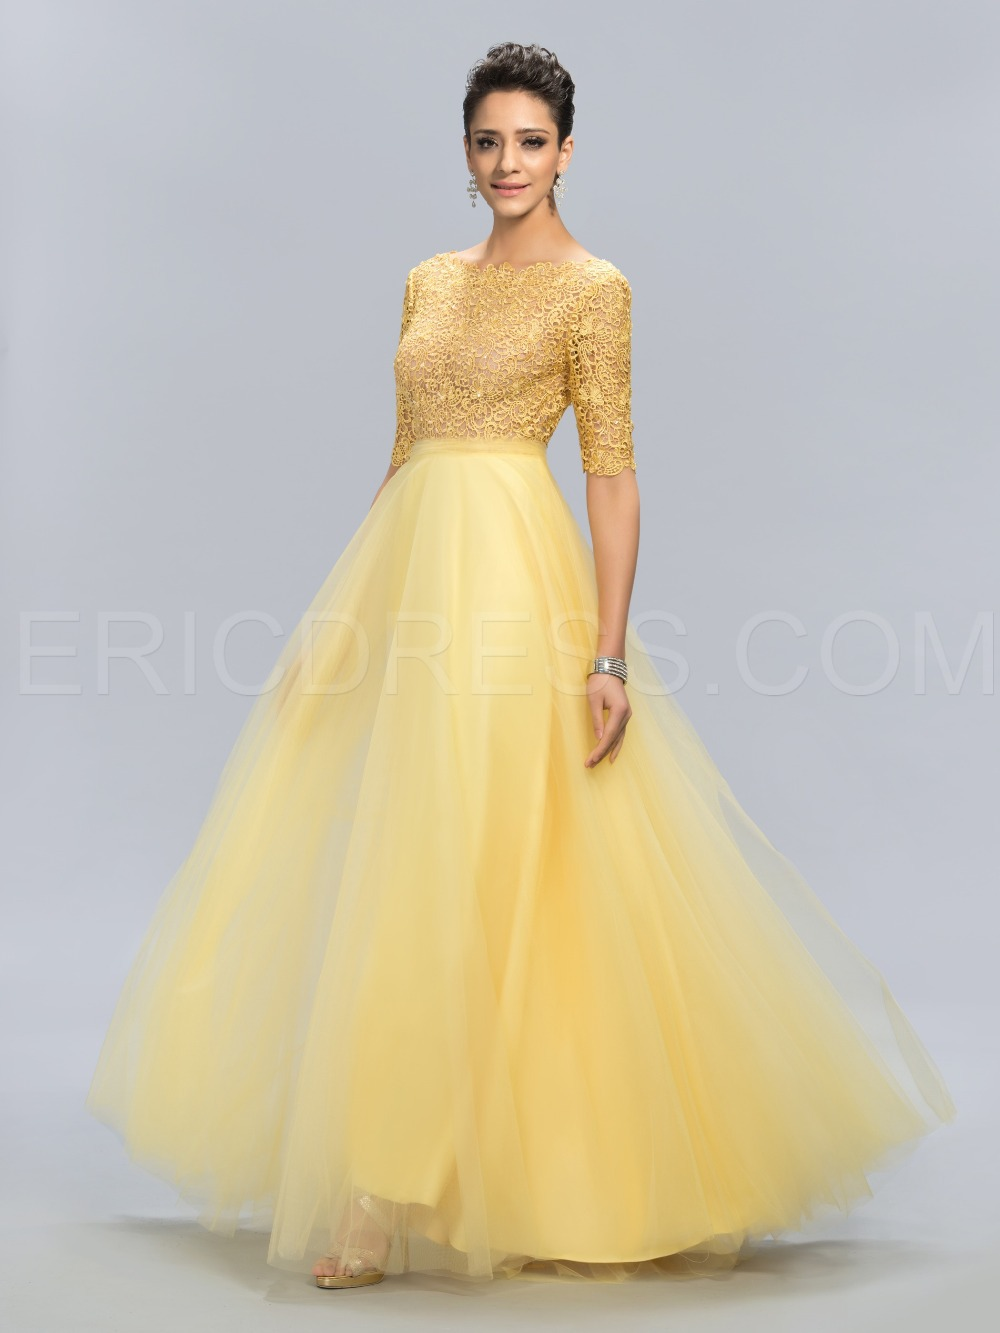 c477ea9cfa5a0 Latest Design Prom Long Lace Yellow A Line Evening Dress 2015 Graceful Open  Back Evening Gown See Througn Half Sleeve Party Gown-in Evening Dresses  from ...